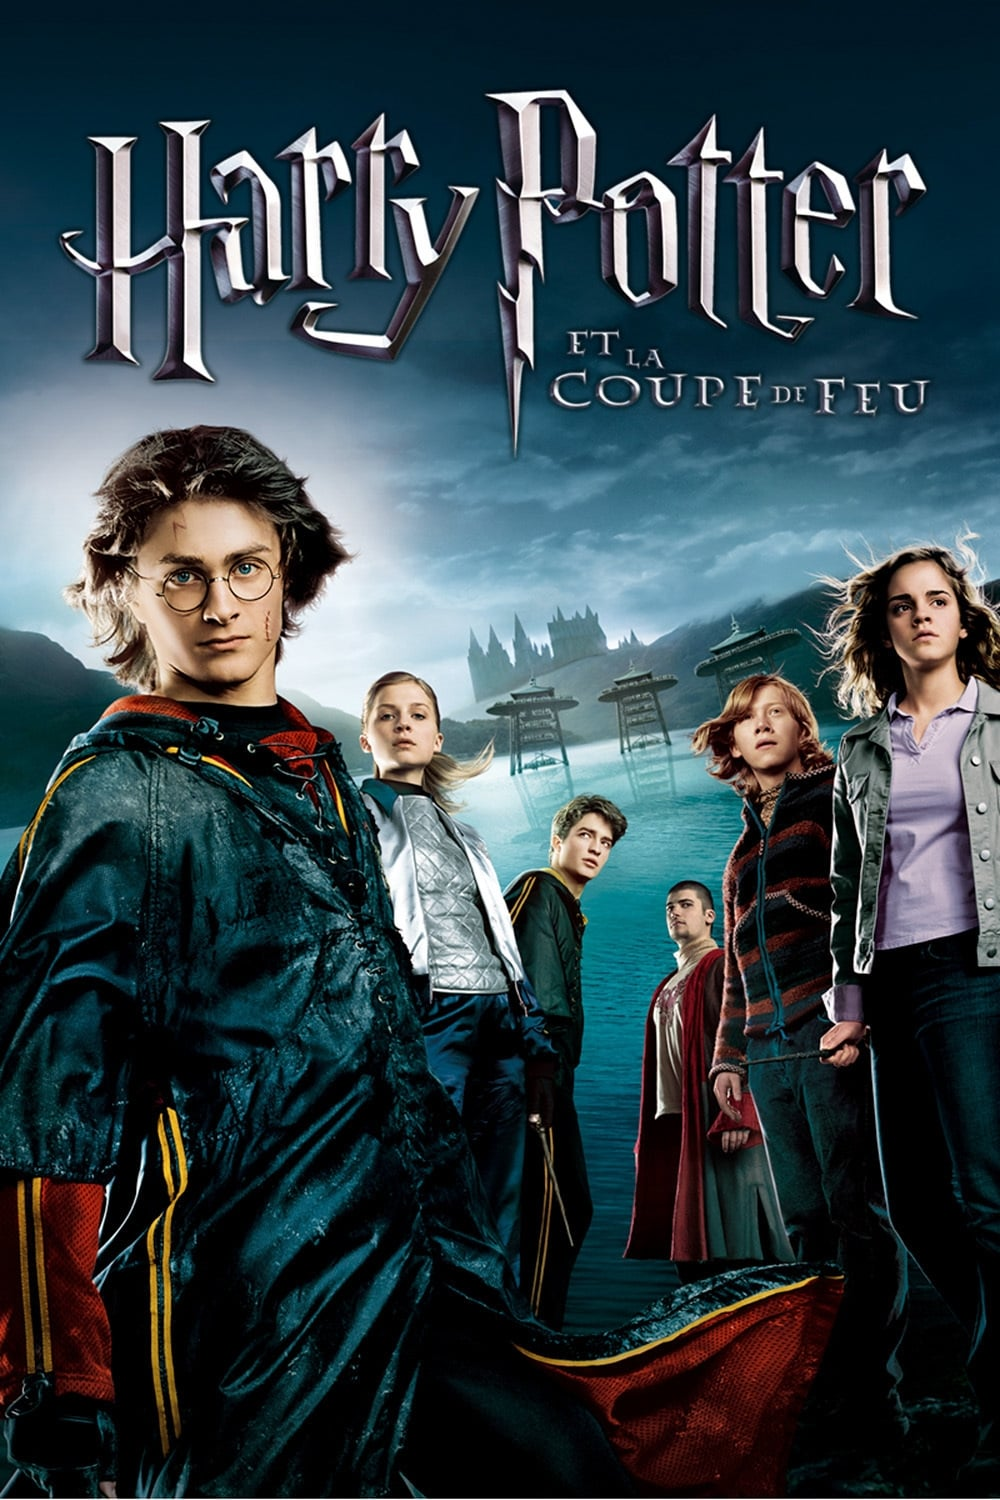 film harry potter et la coupe de feu 2005 en streaming vf complet filmstreaming hd com. Black Bedroom Furniture Sets. Home Design Ideas